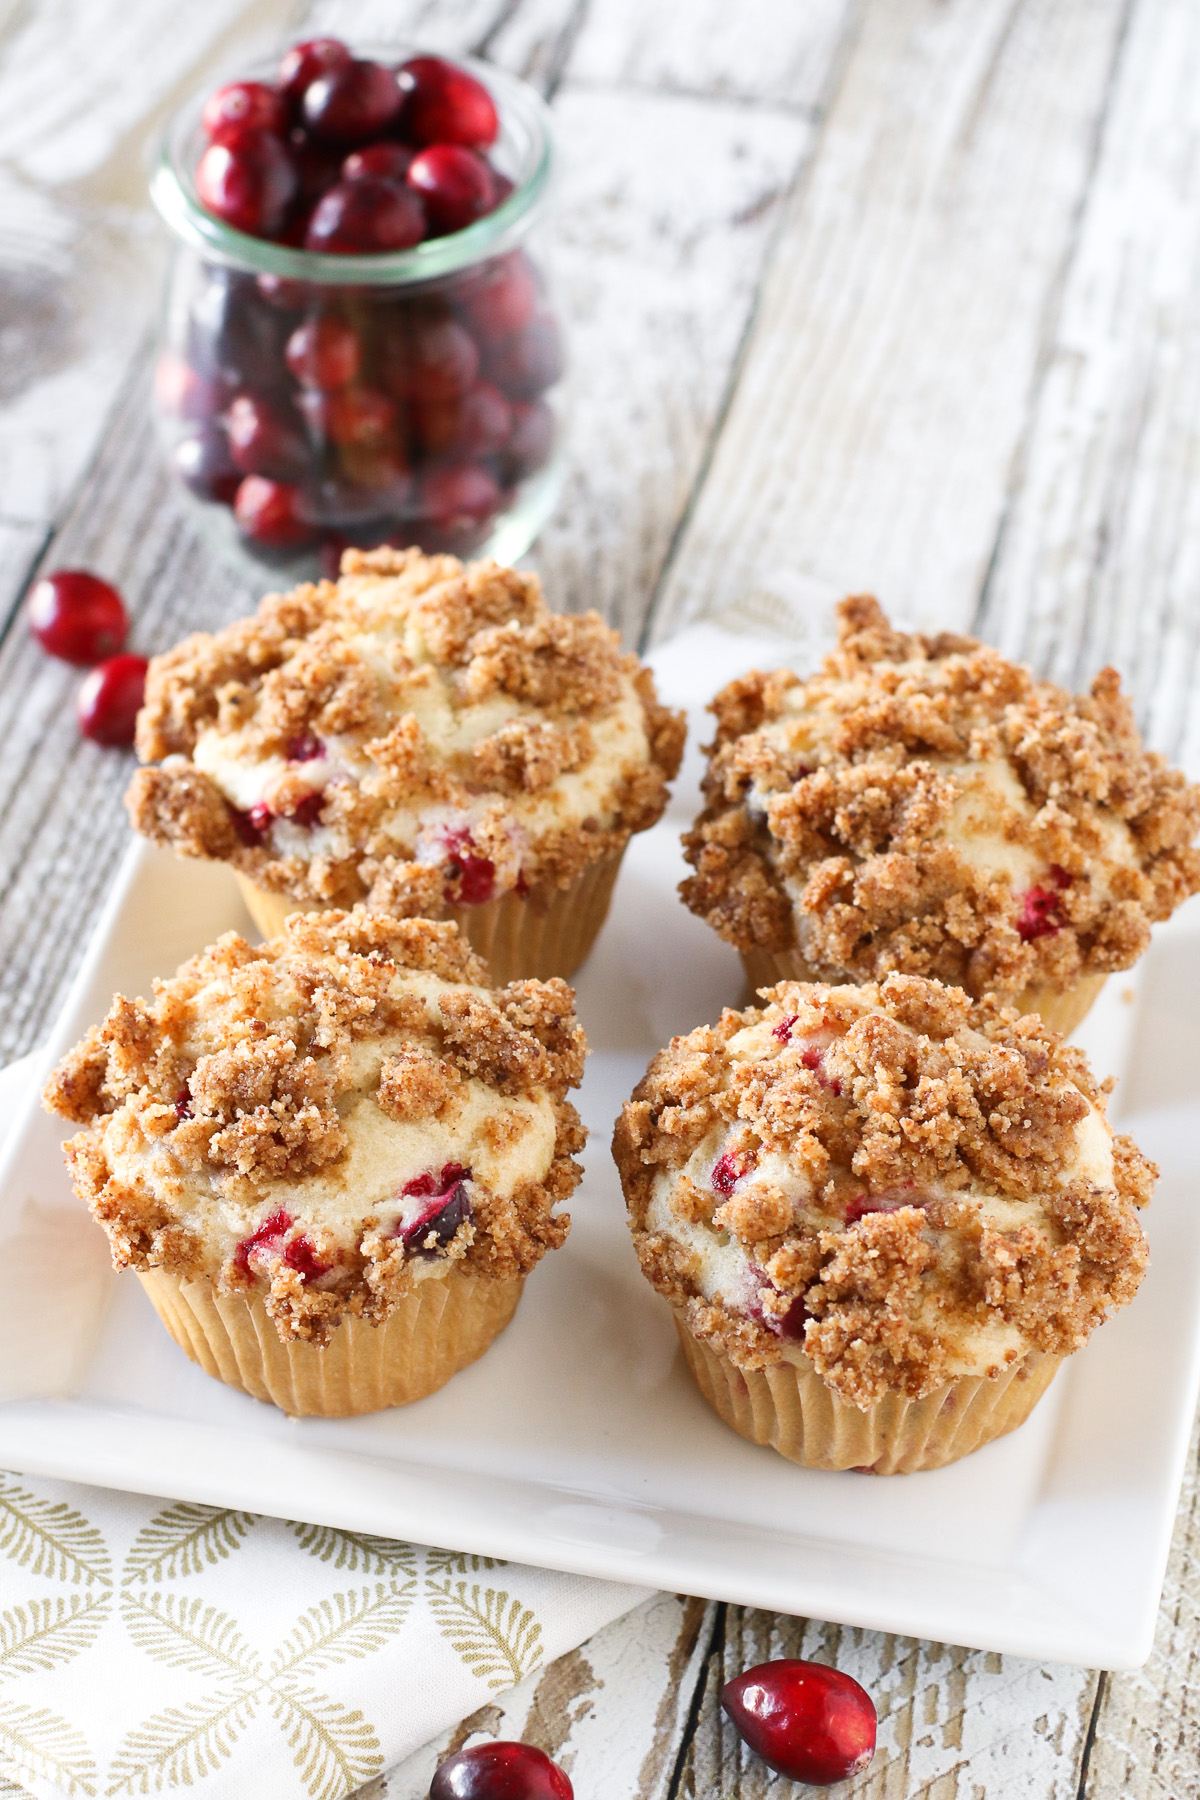 Gluten Free Vegan Cranberry Coffeecake Muffins. Fluffy vanilla cake, studded with fresh cranberries and topped with a crunchy cinnamon topping.